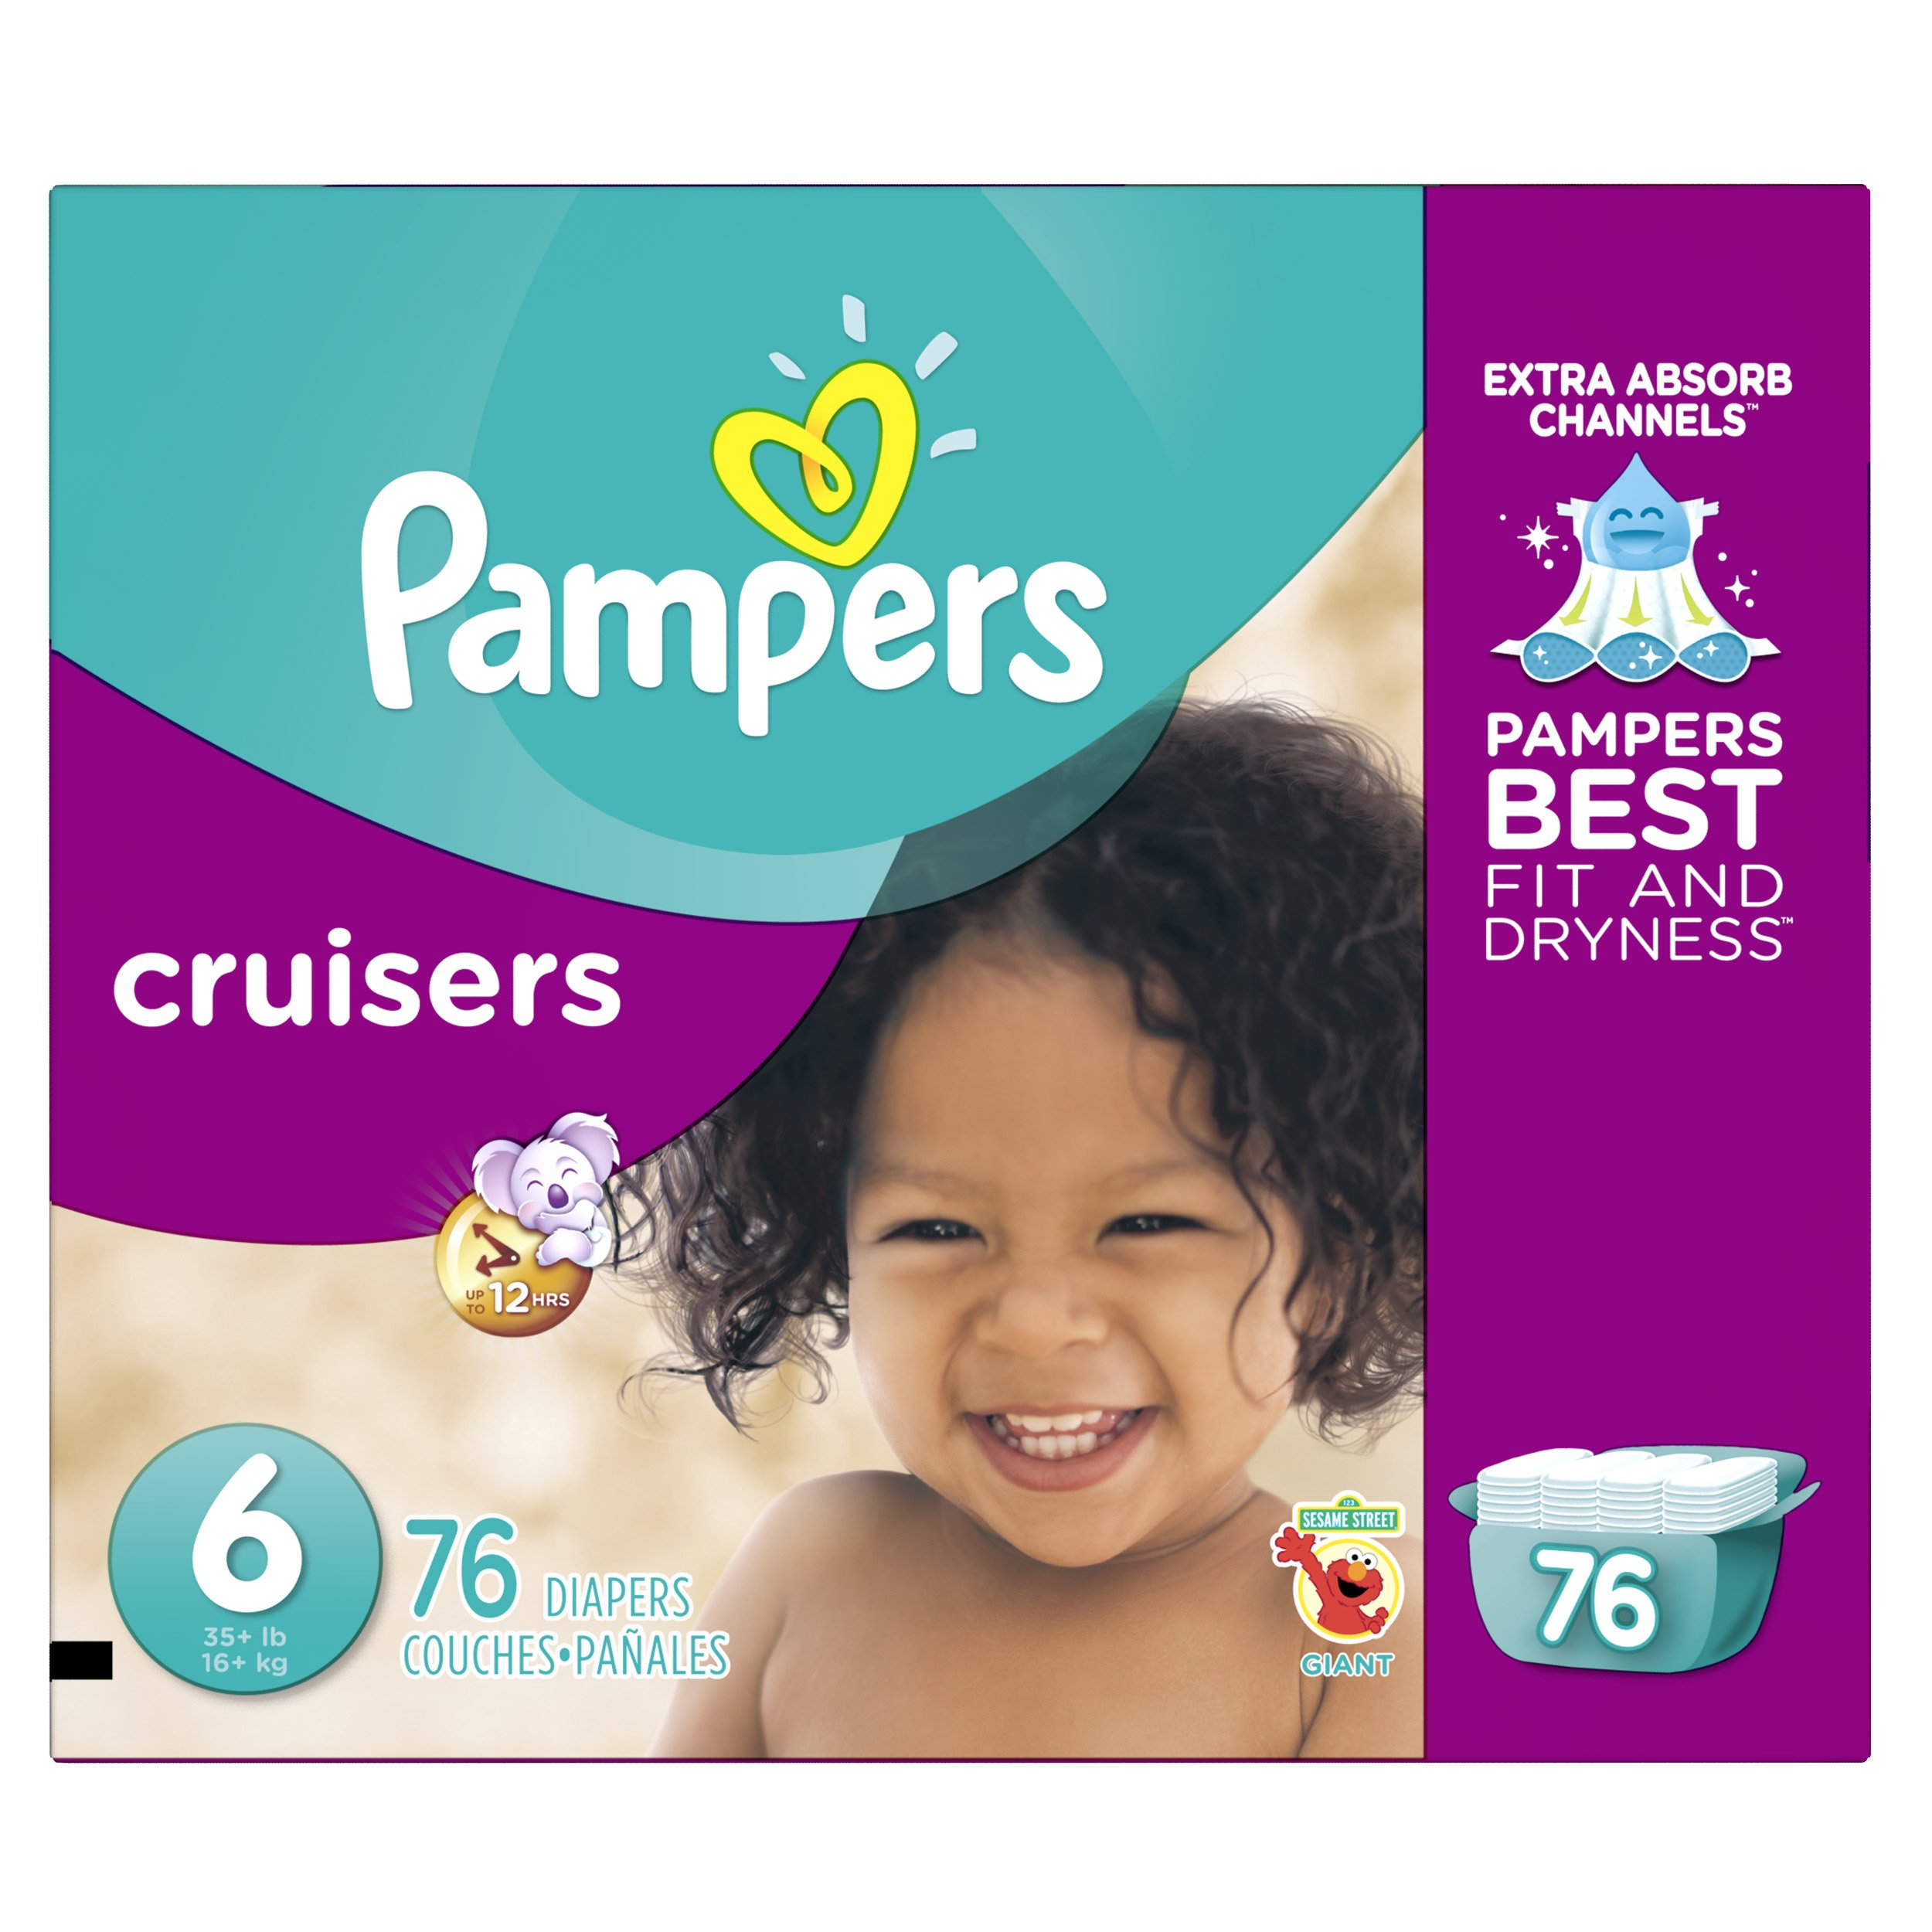 Pampers Cruisers Disposable Diapers Size 6, 76 Count, GIANT product image